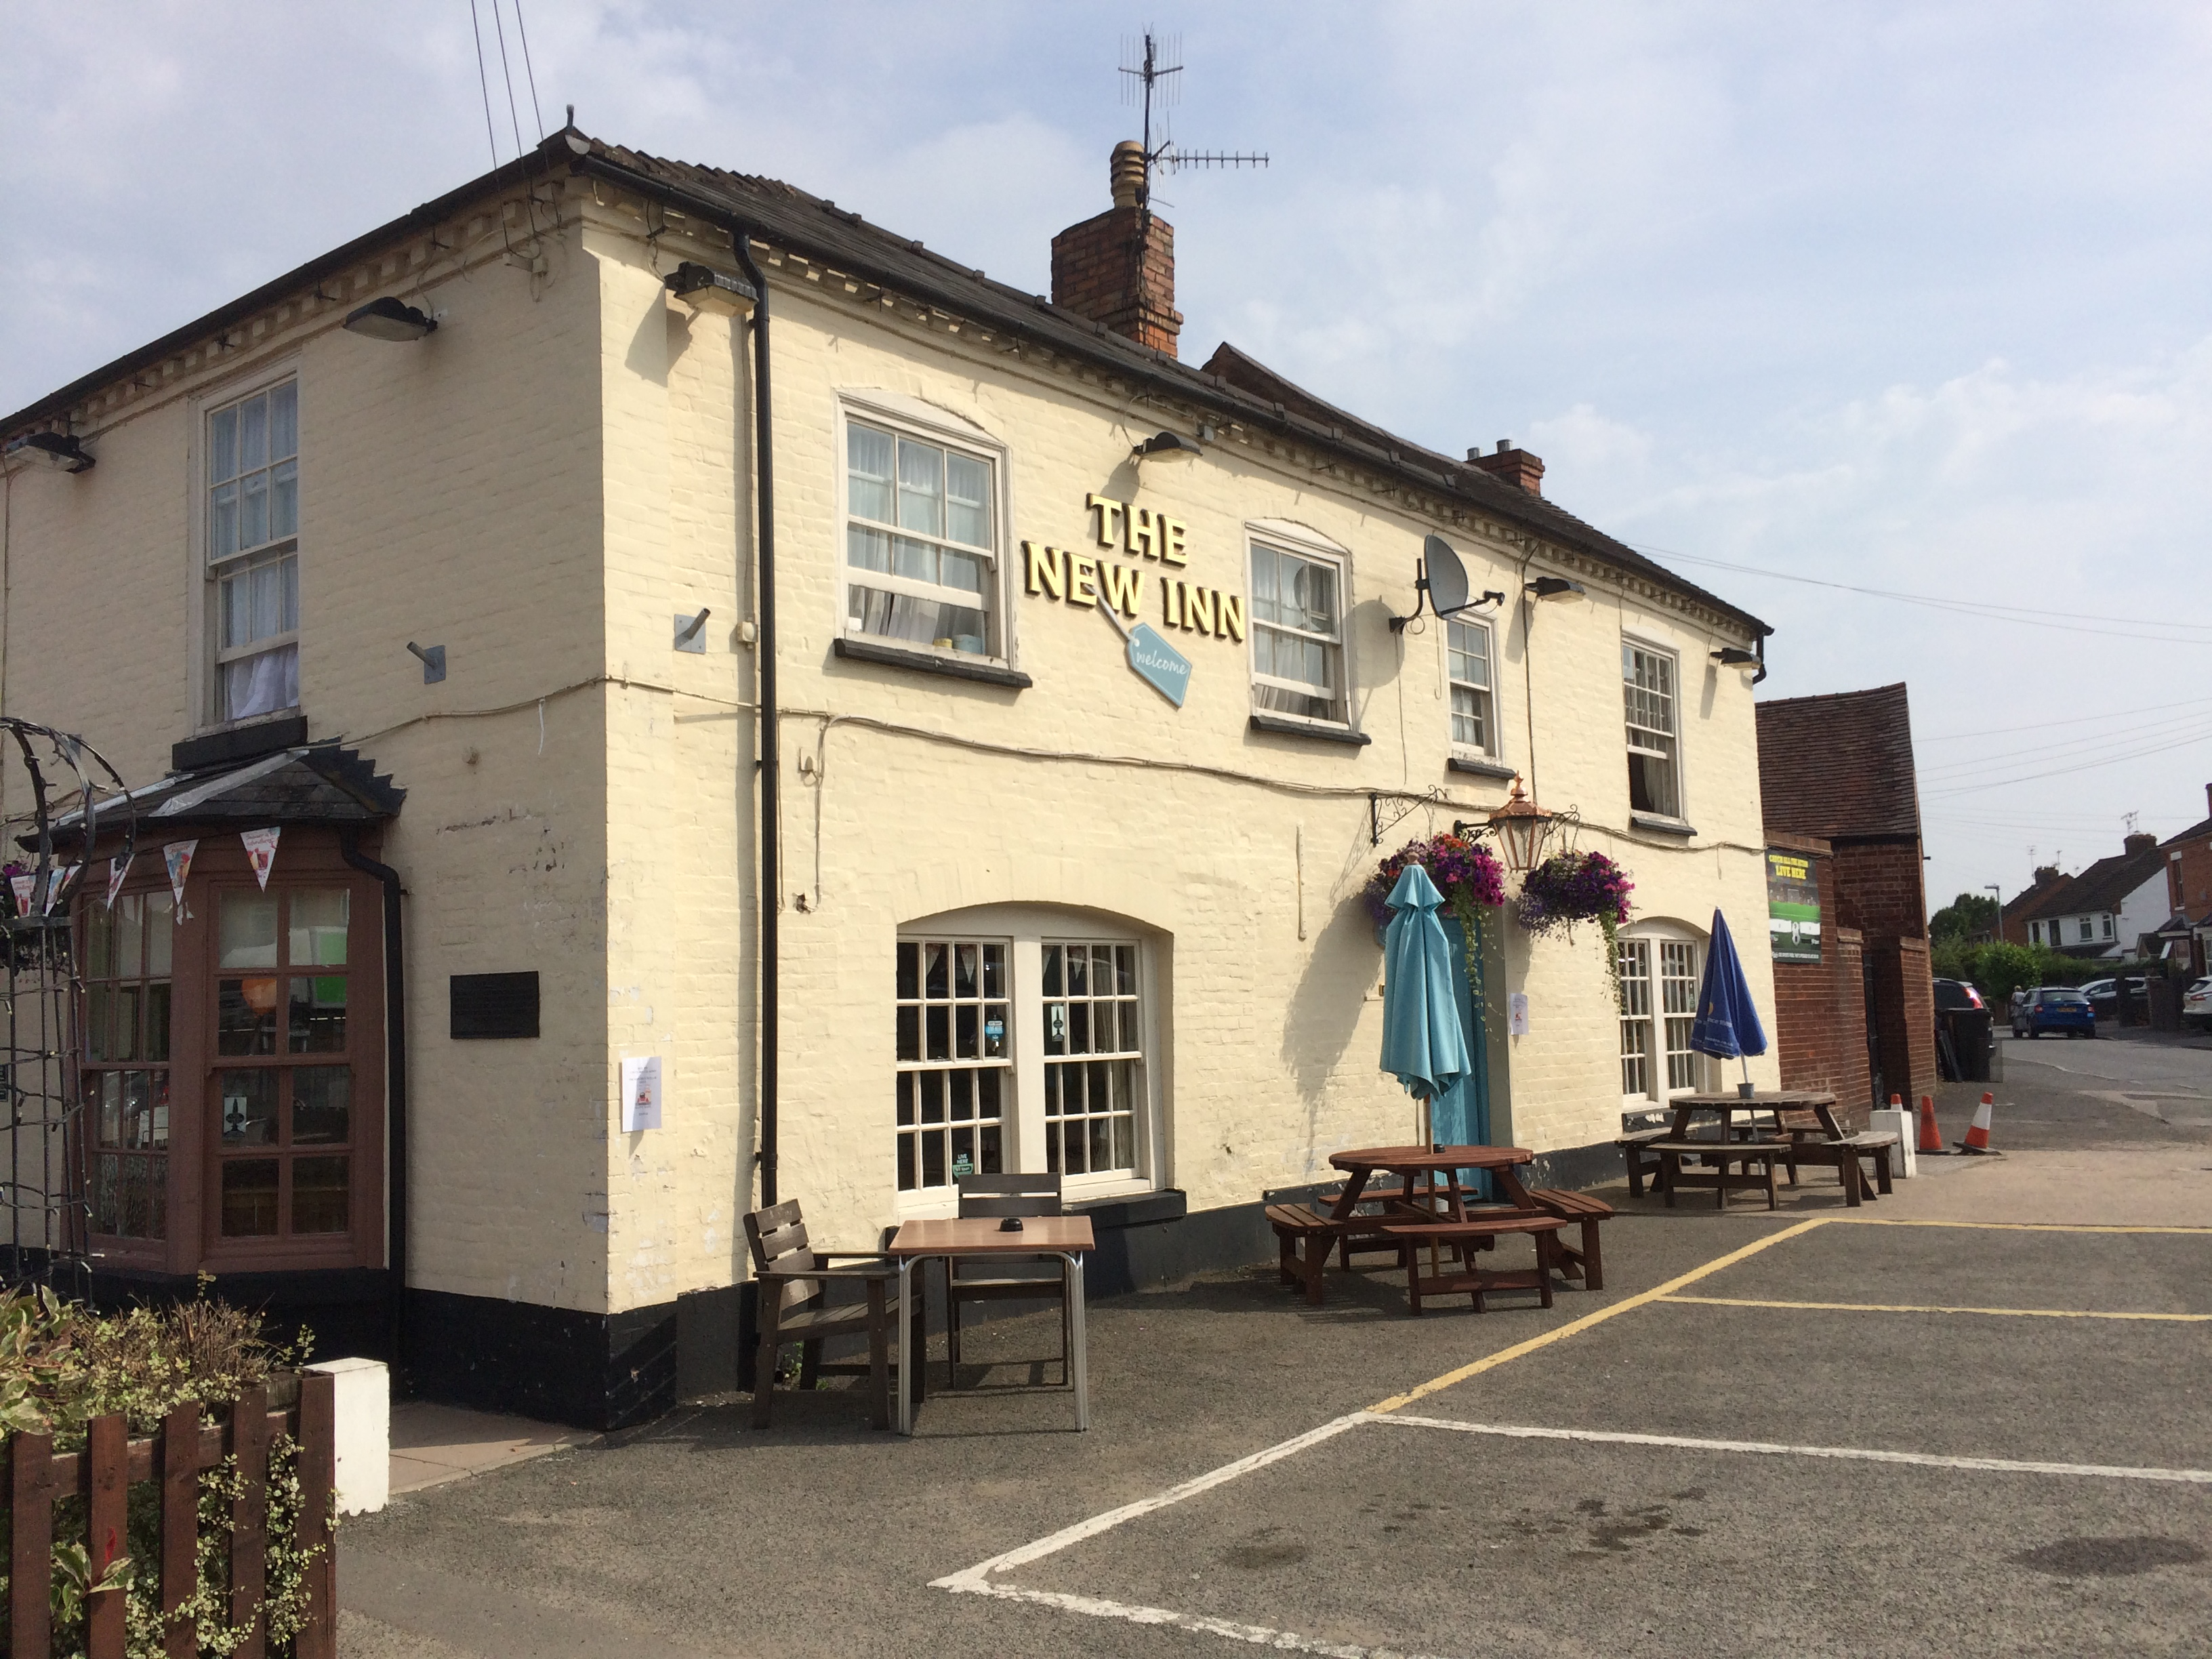 New Inn Claines - Worcester, Worcestershire WR3 7DH - 01905 700768 | ShowMeLocal.com